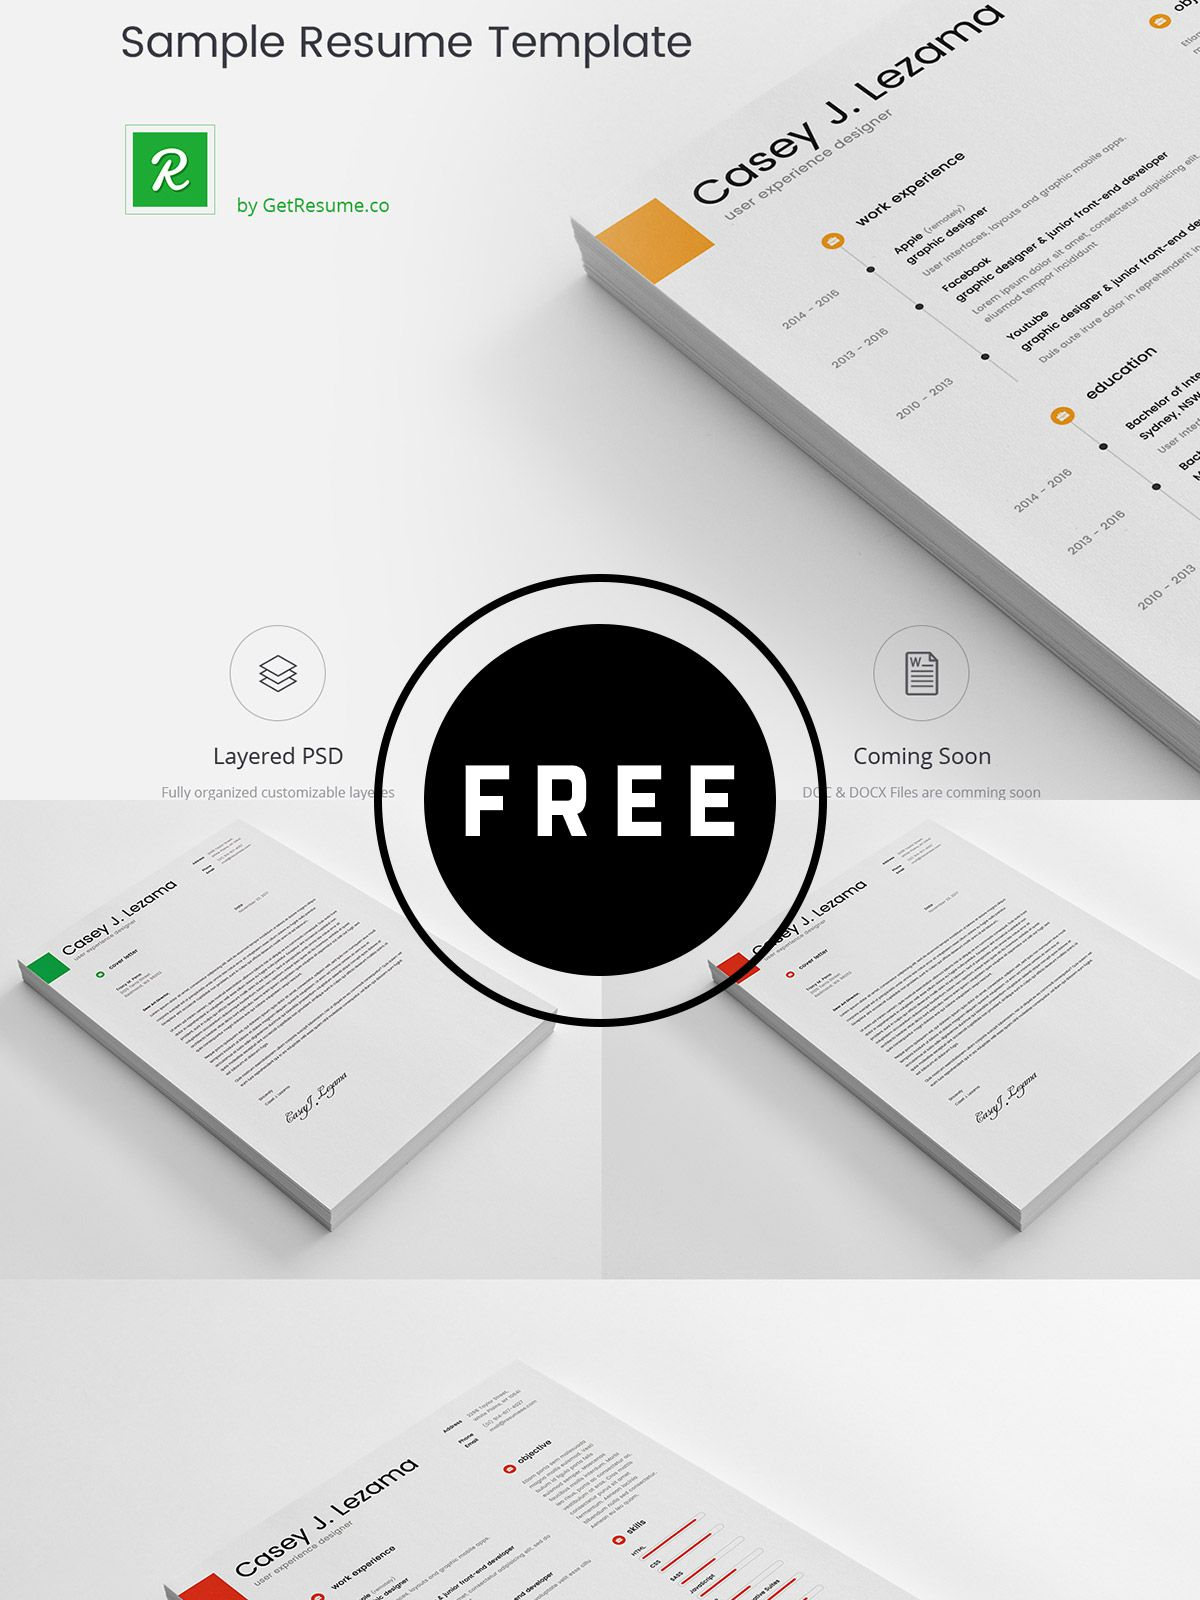 98 Awesome Free Resume Templates In This Post Are Made By Creative